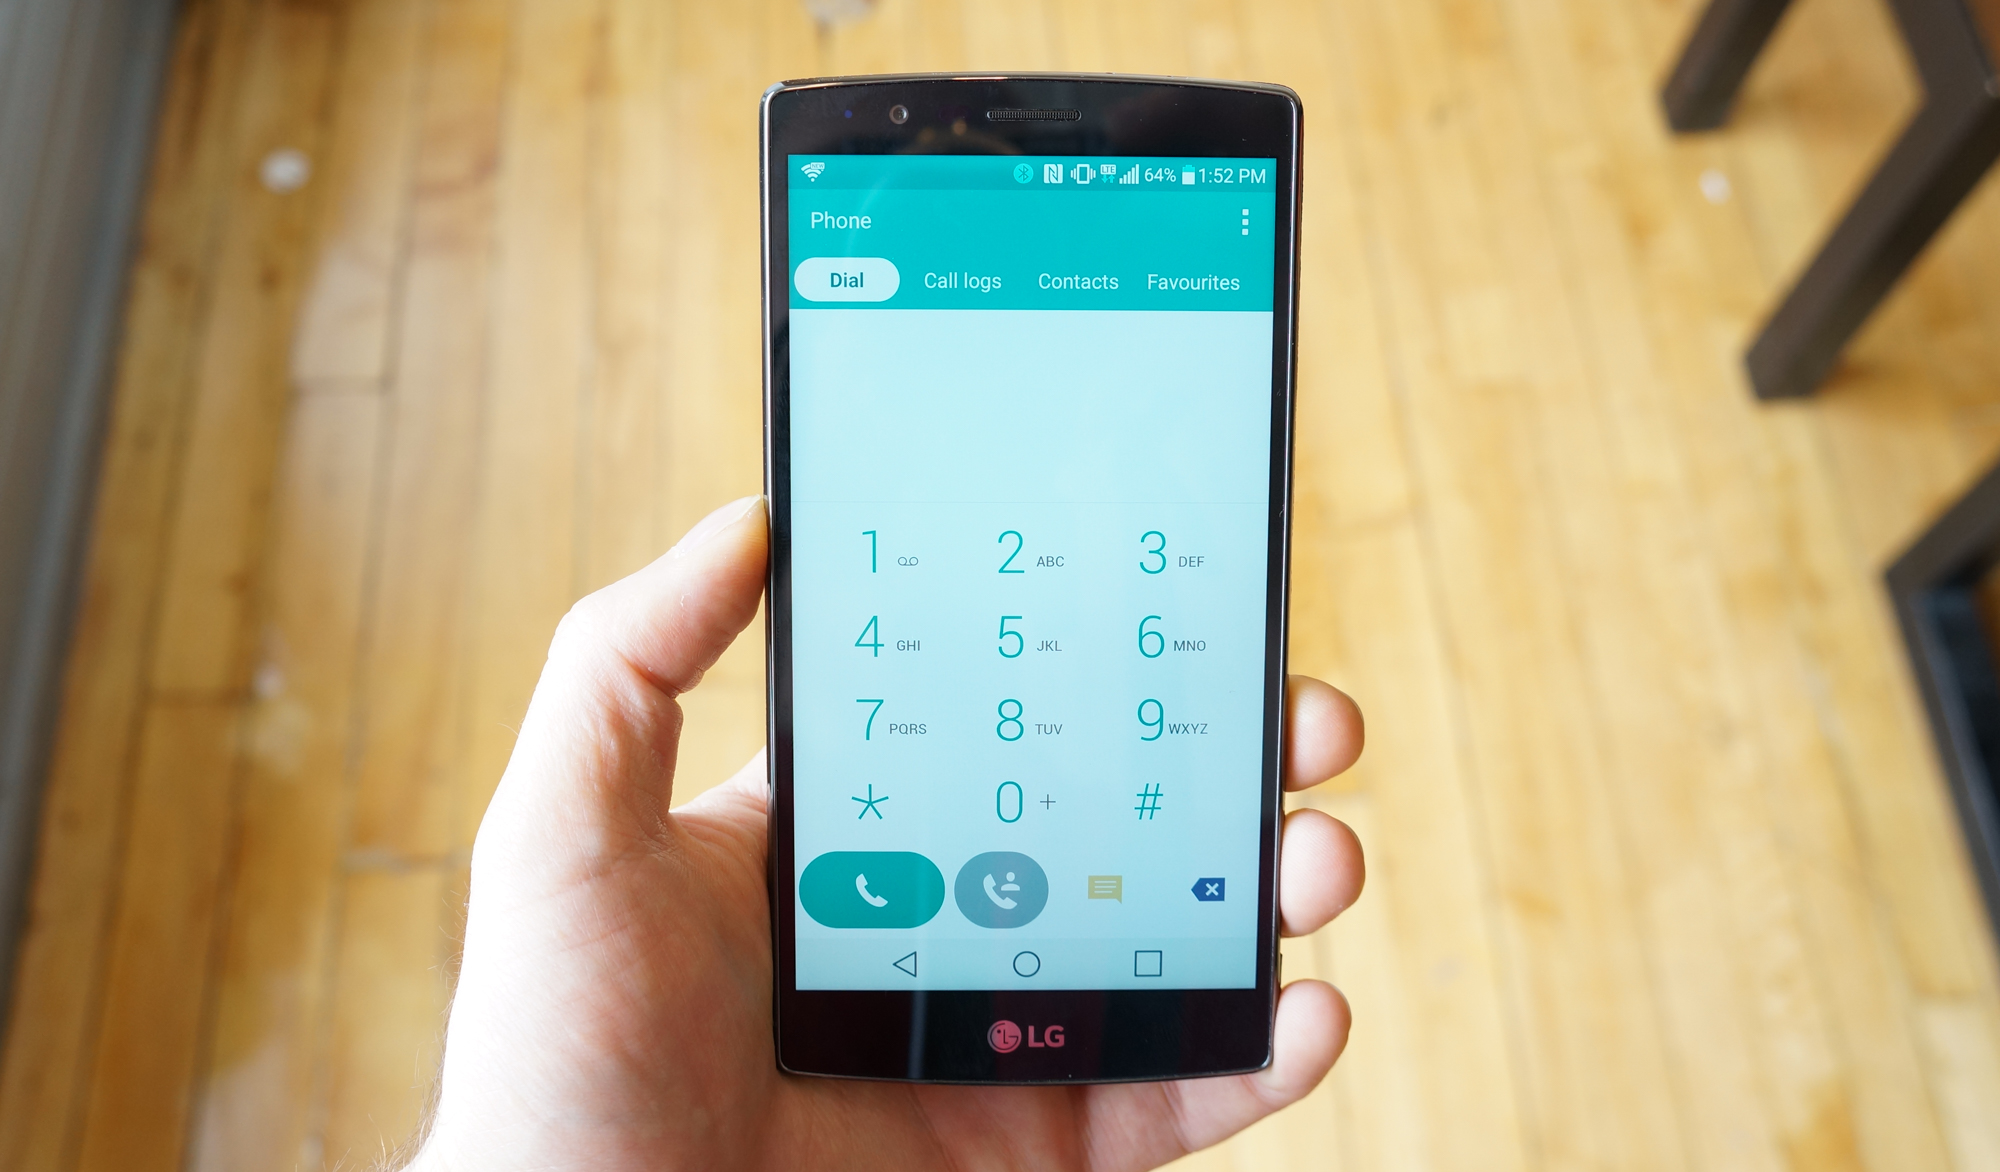 lgg4review-03752